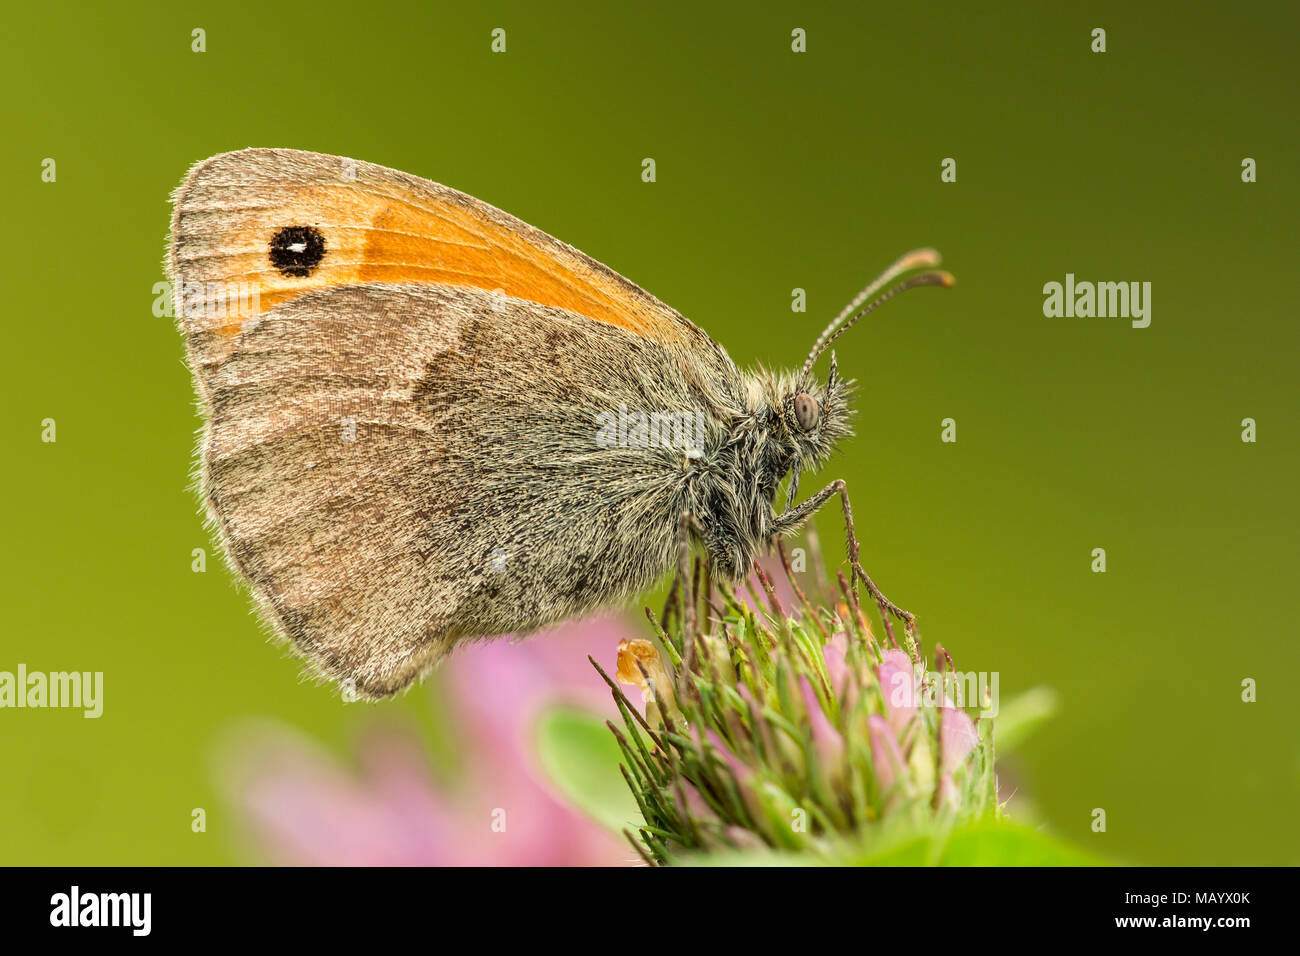 Small heath (Coenonympha pamphilus) on clover blossom, Burgenland, Austria - Stock Image